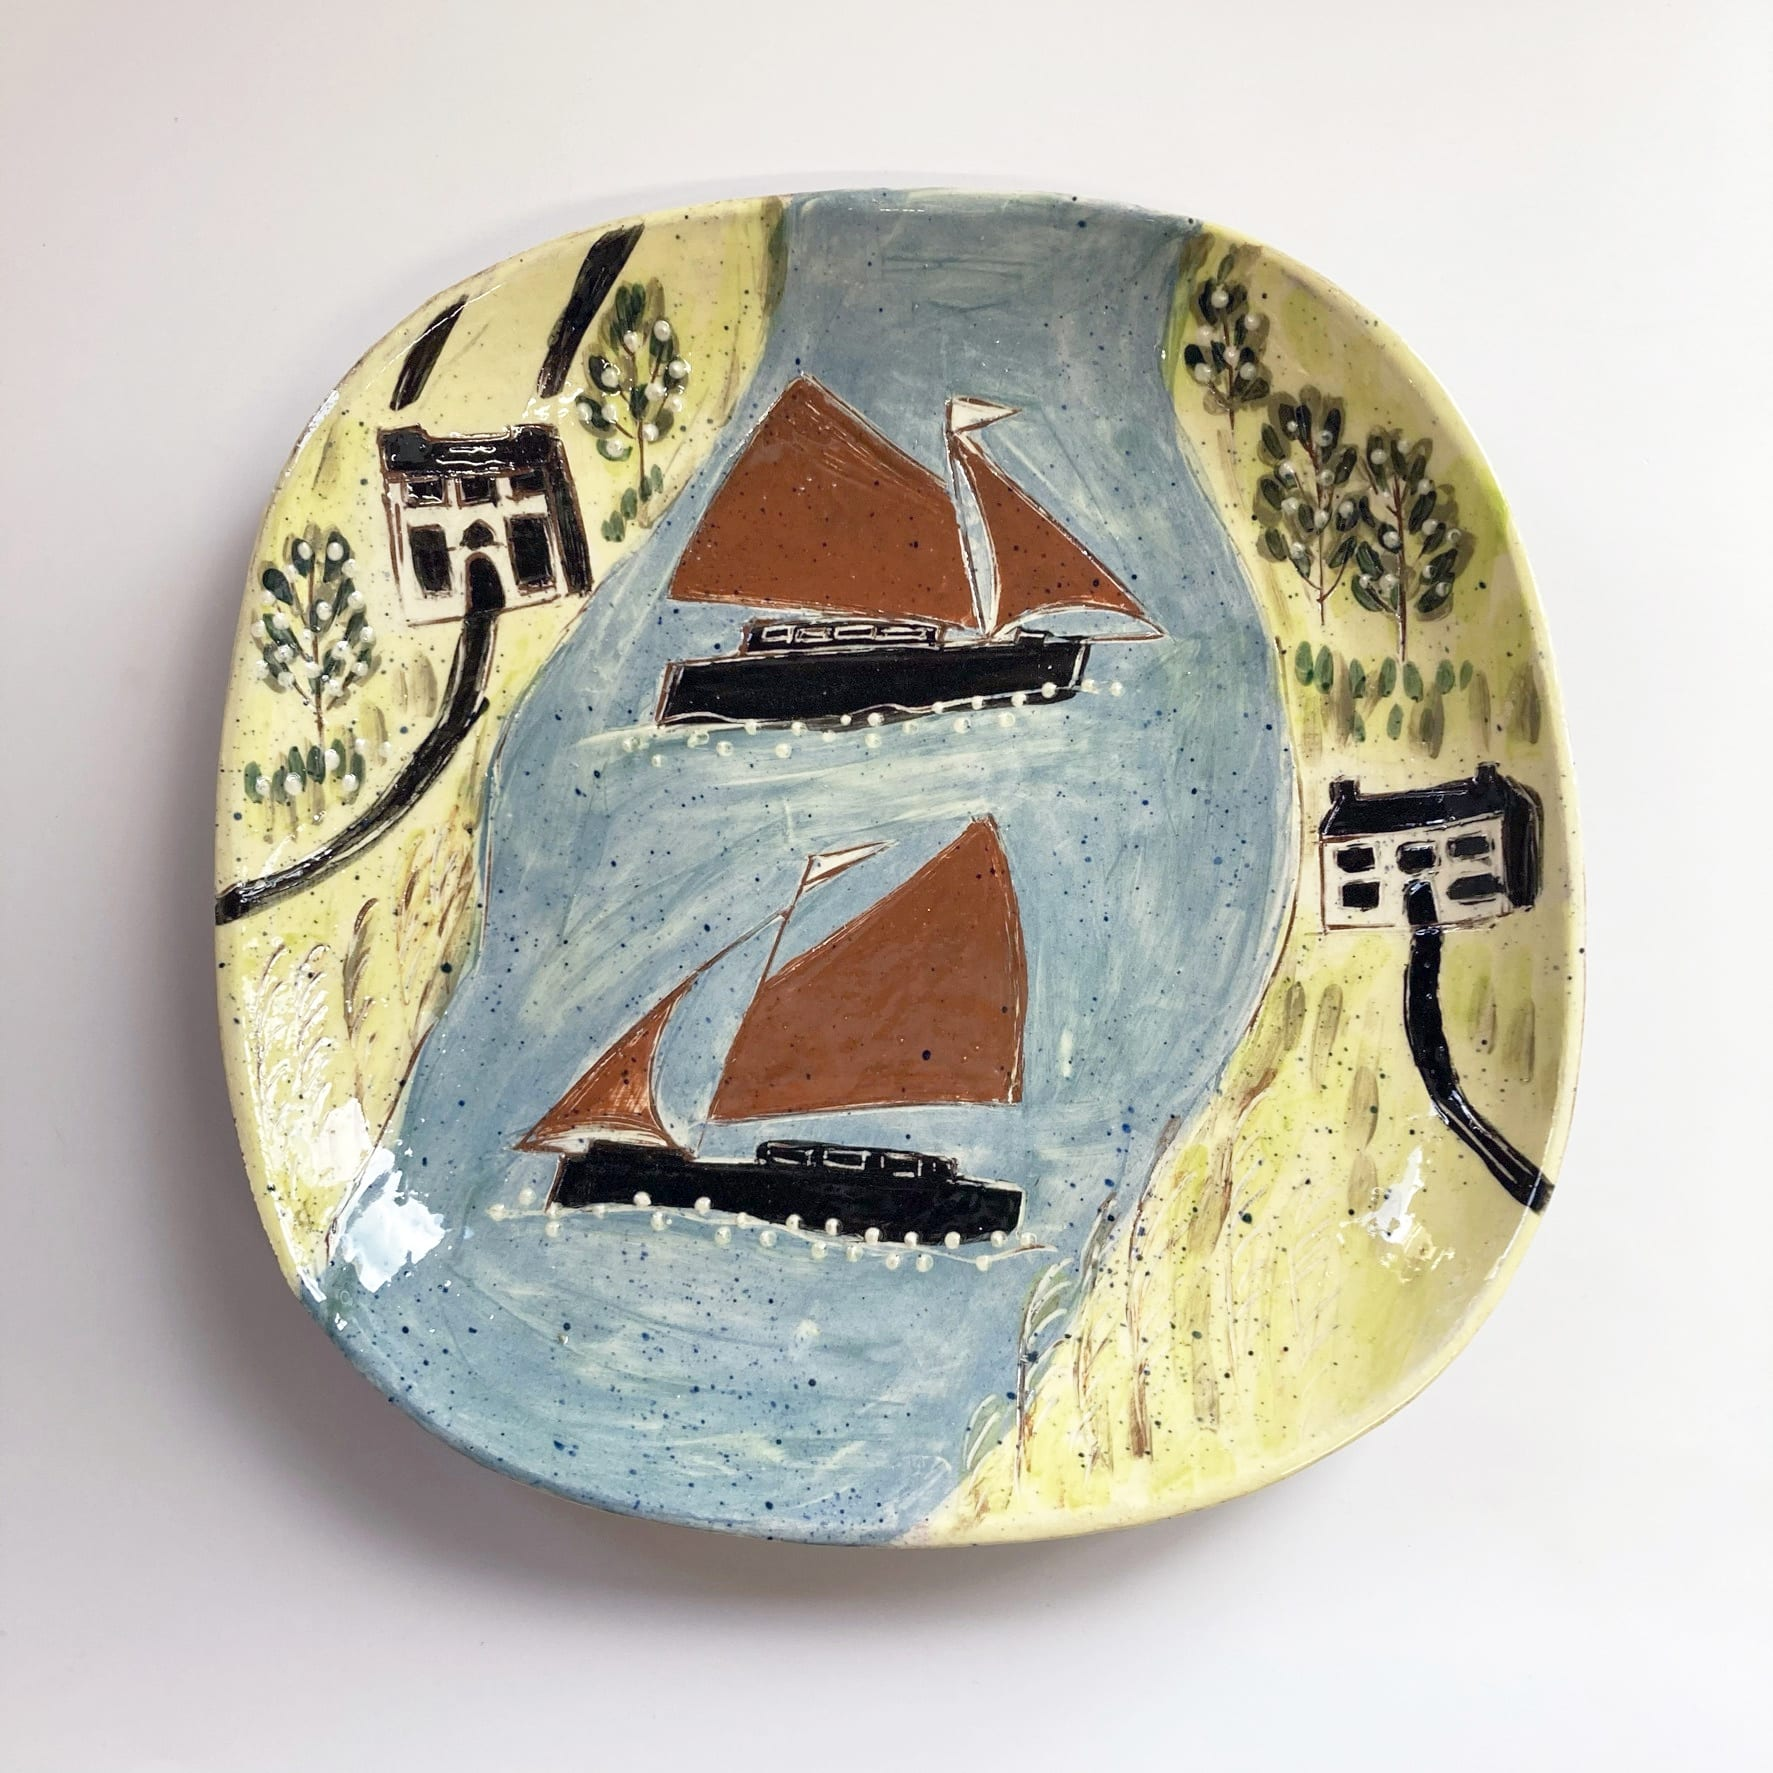 """<span class=""""link fancybox-details-link""""><a href=""""/artists/428-anne-barrell/works/7634-anne-barrell-red-sails-in-the-creek-2021/"""">View Detail Page</a></span><div class=""""artist""""><strong>Anne Barrell</strong></div> <div class=""""title""""><em>Red Sails in the Creek</em>, 2021</div> <div class=""""medium"""">handmade, handpainted ceramic</div> <div class=""""dimensions"""">23 x 23 cm</div><div class=""""copyright_line"""">Ownart: £9.70 x 10 Months, 0% APR</div>"""